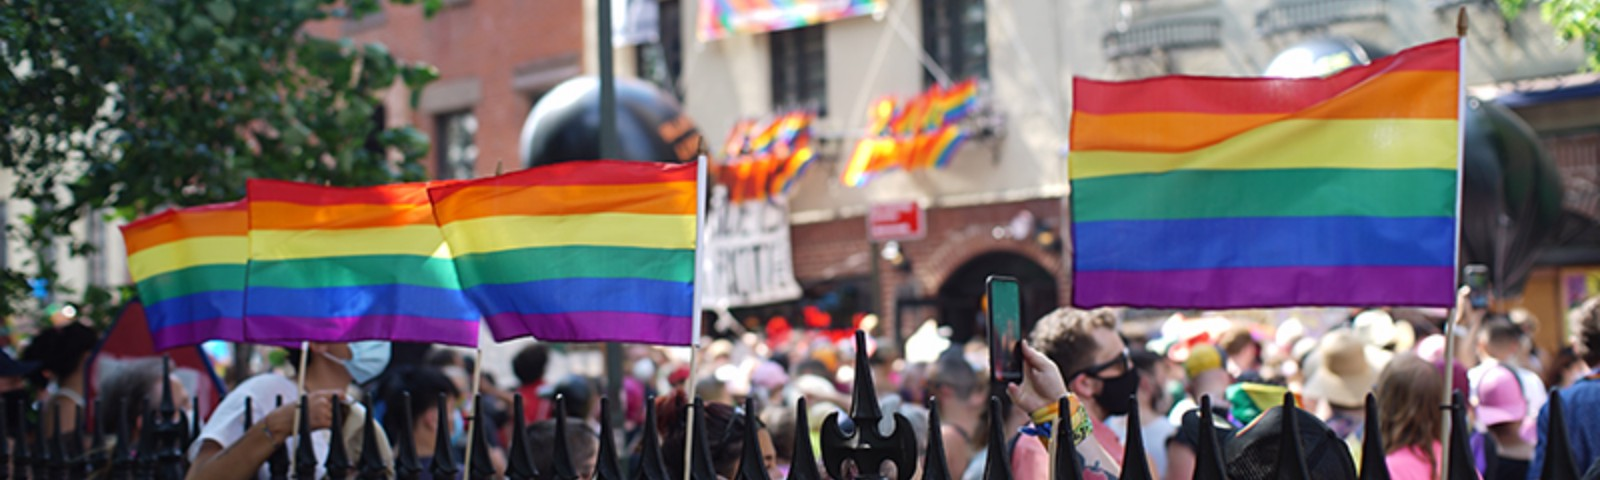 Street scene with pride flags